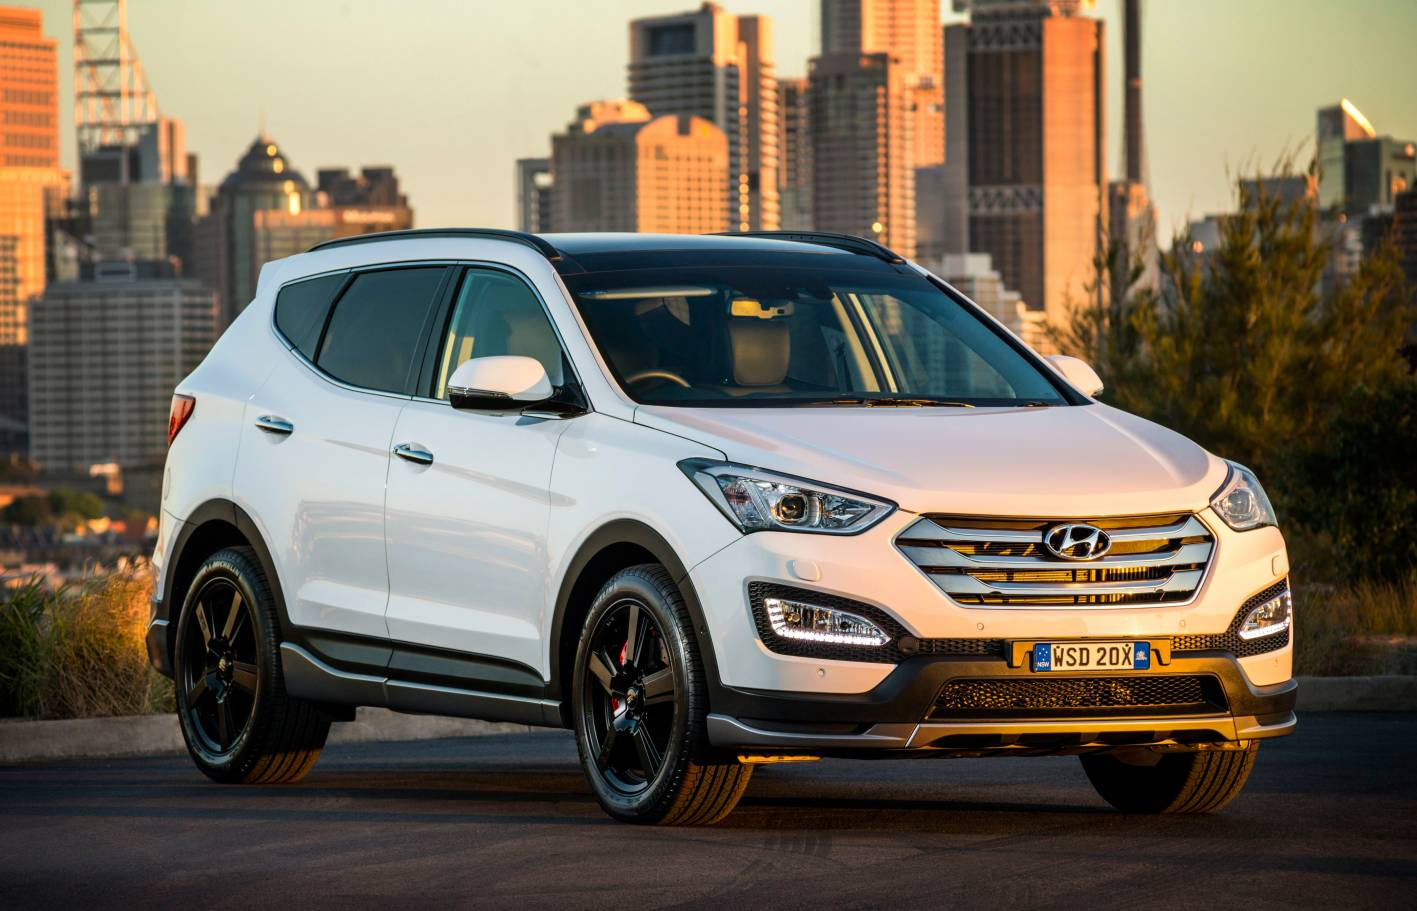 Hyundai Cars - News: Santa Fe updated for 2015 with new SR ...